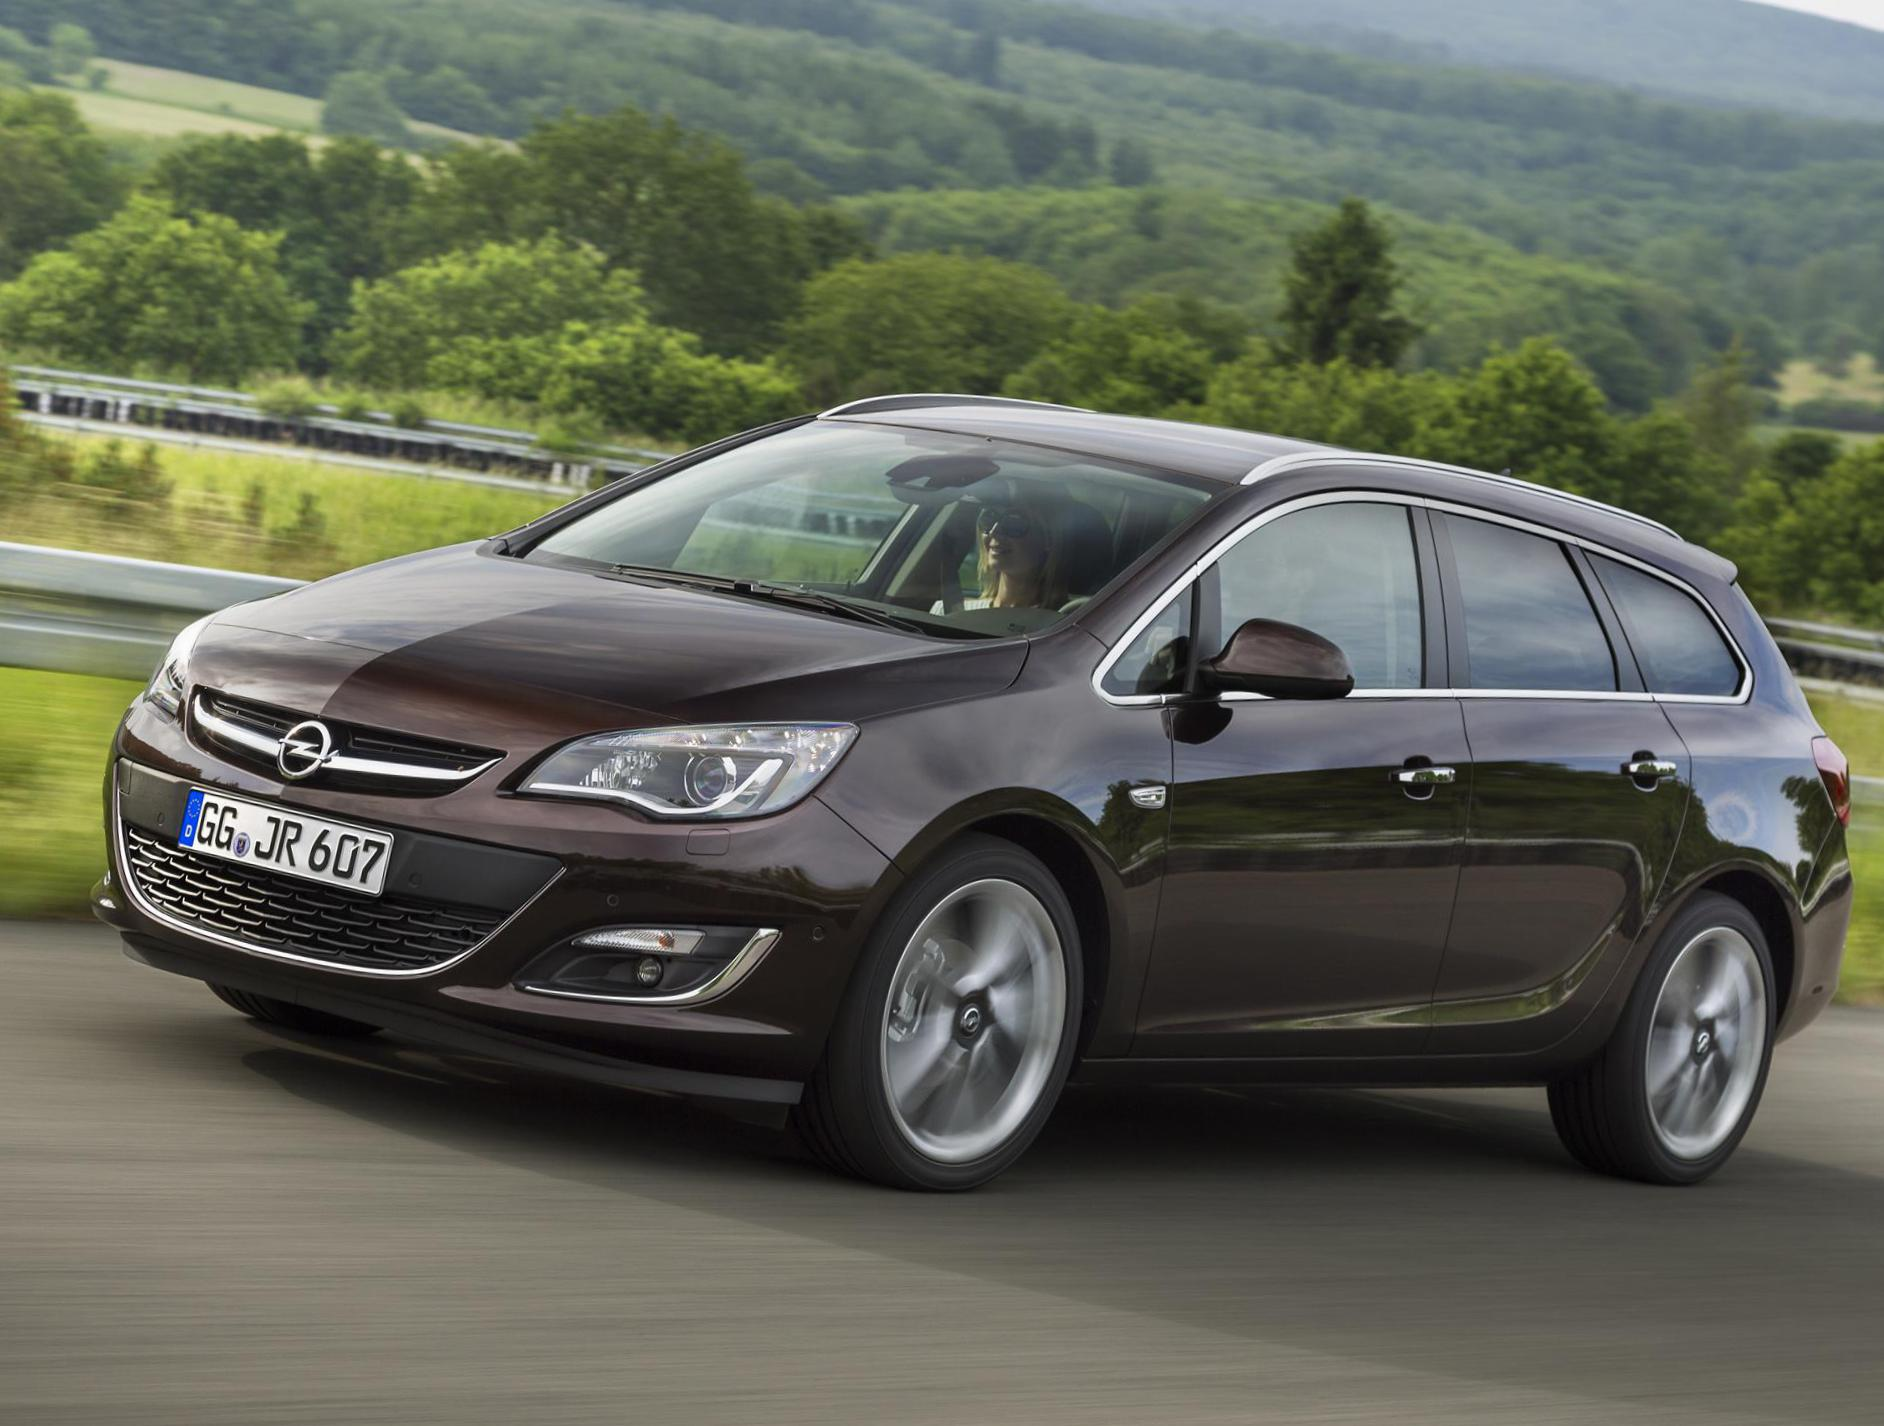 opel astra j sports tourer photos and specs photo astra j sports tourer opel spec and 23. Black Bedroom Furniture Sets. Home Design Ideas